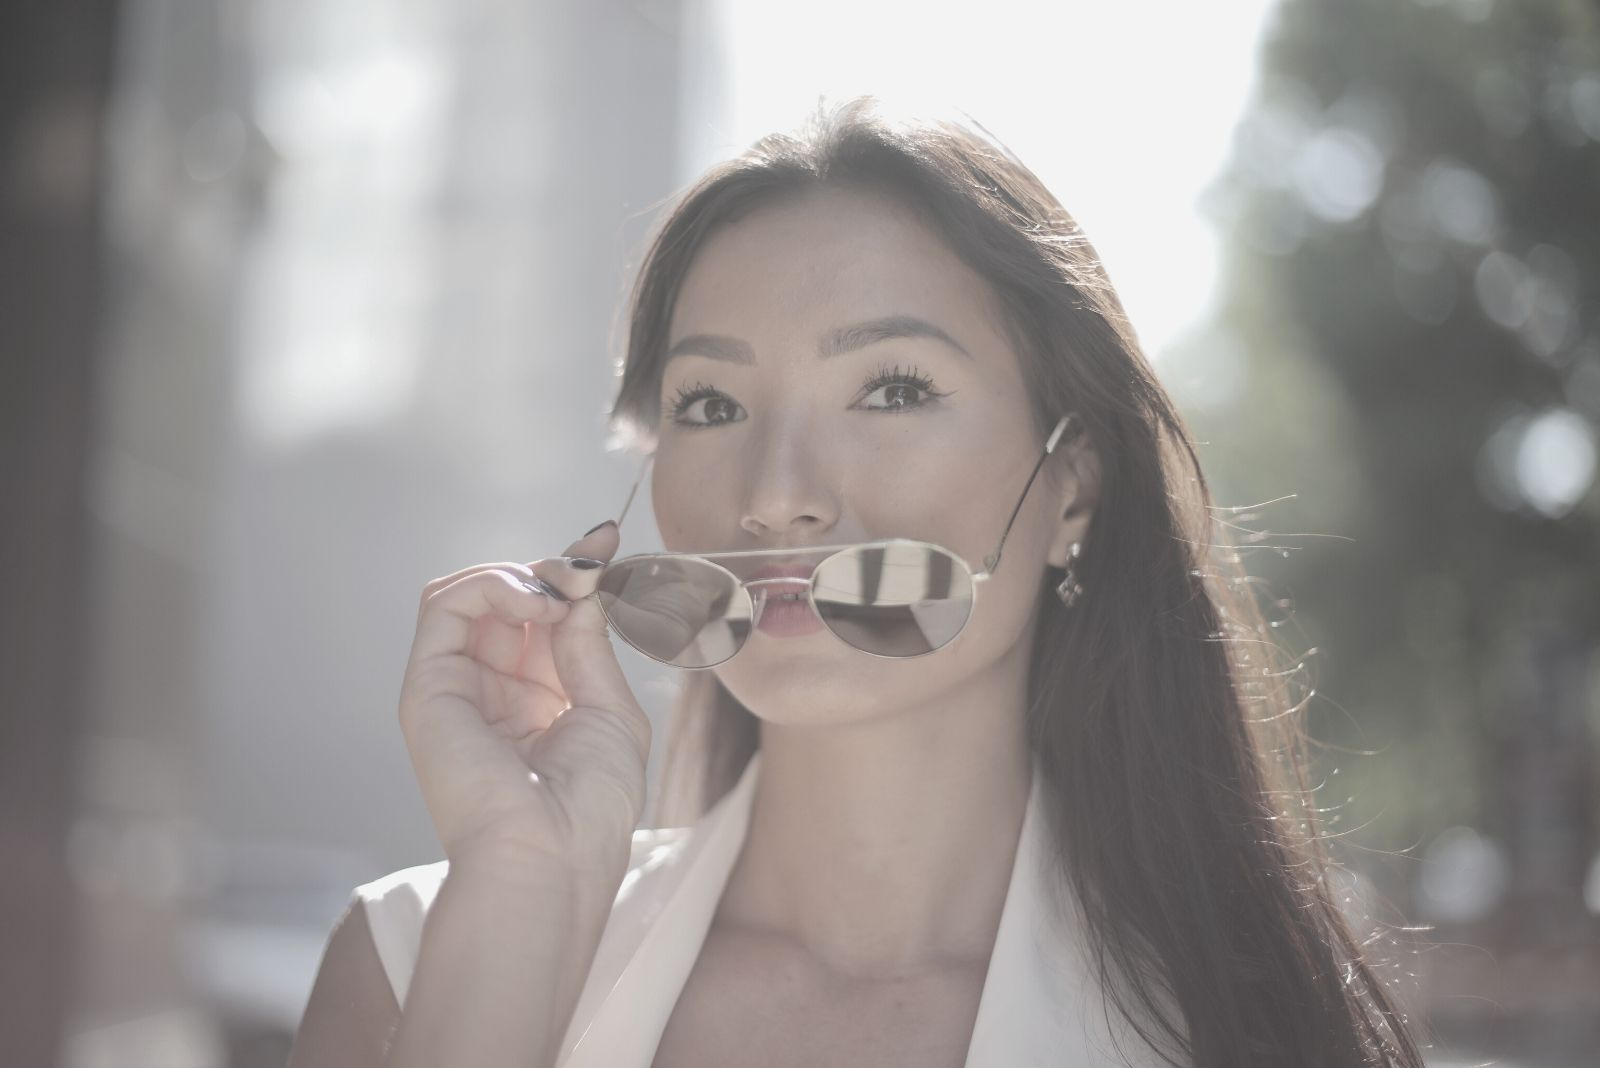 asian woman in white top holding a sunglass while walking outdoors